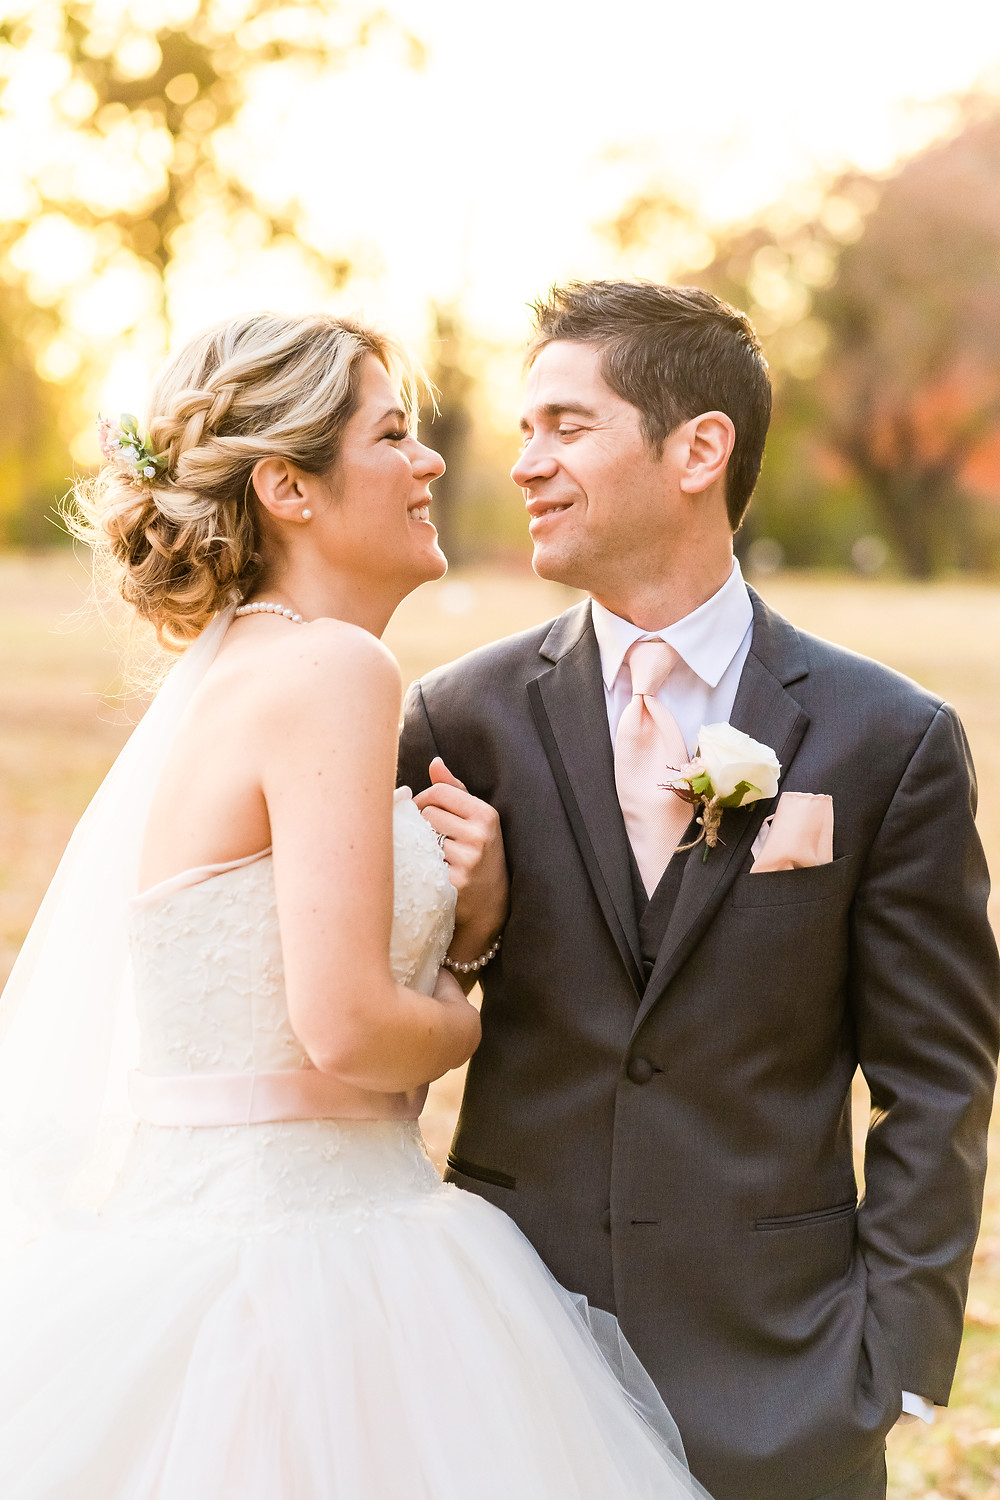 Bride and groom smile at each other in the sunset